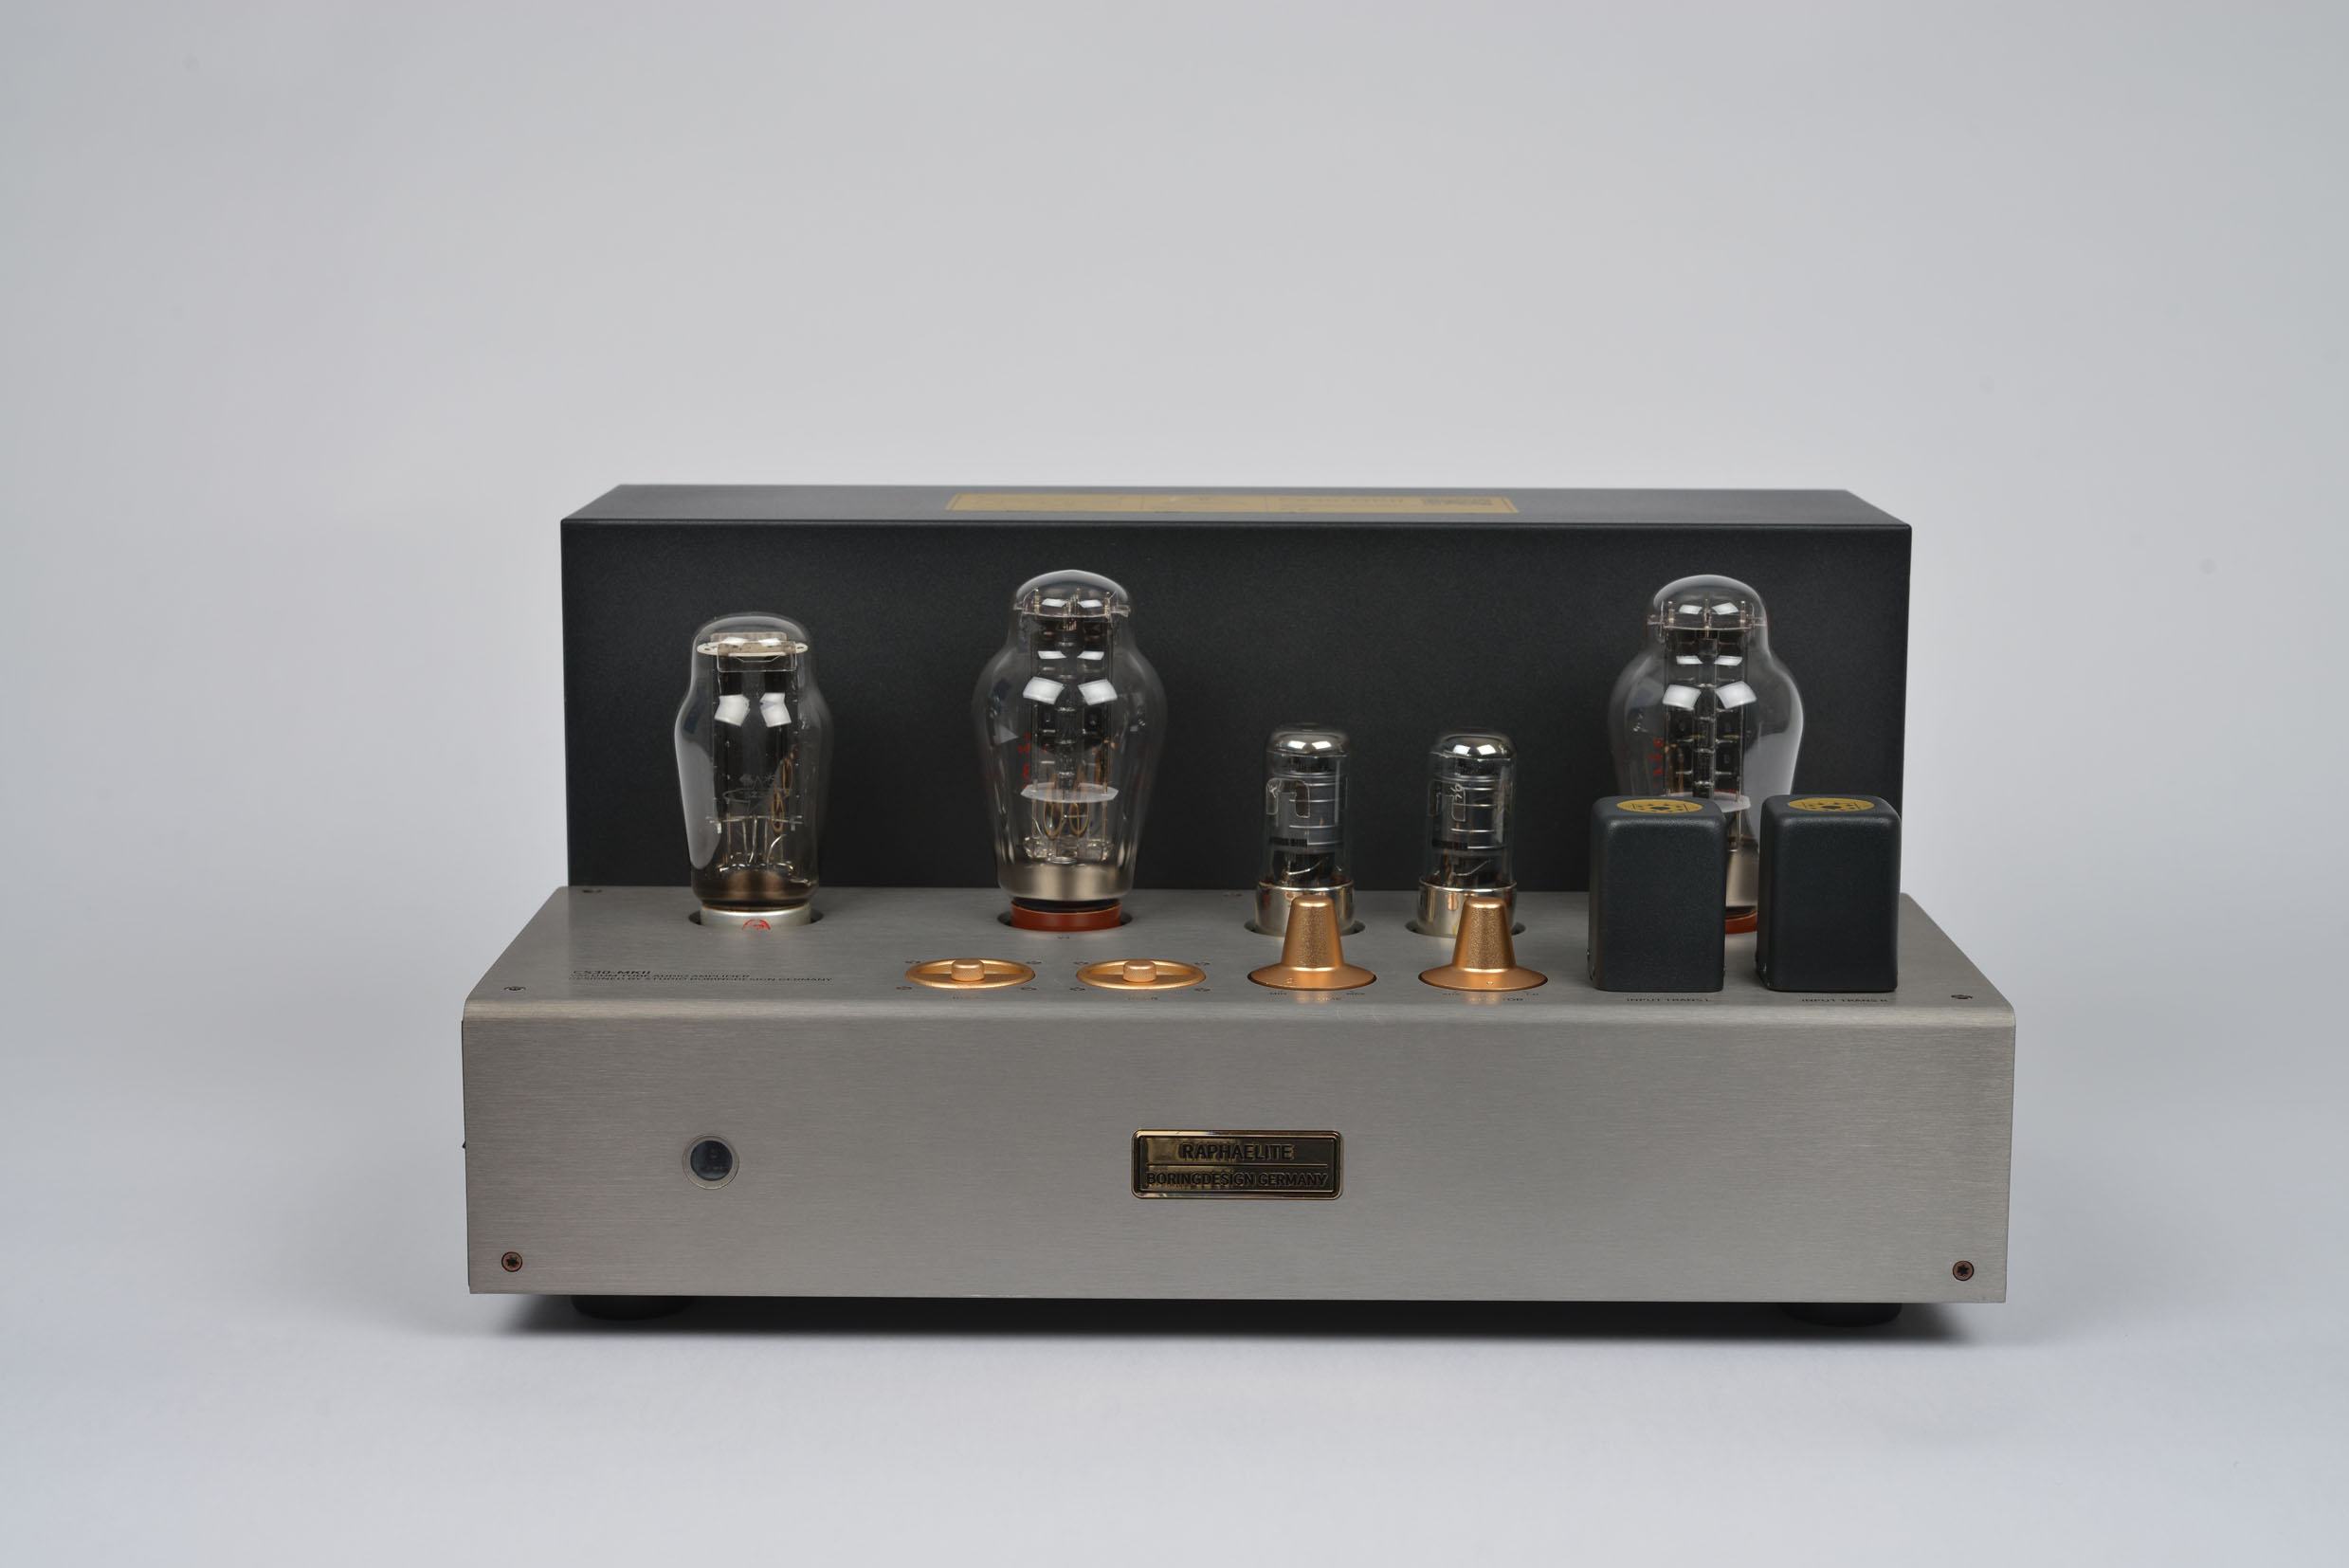 Raphaelite Cs30mkii 300b Single Ended Tube Valve Amplifier W Fully Details About Sub 150w Subwoofer Board Kit 2sa1943 2sc5200 Coupling Output Transformer